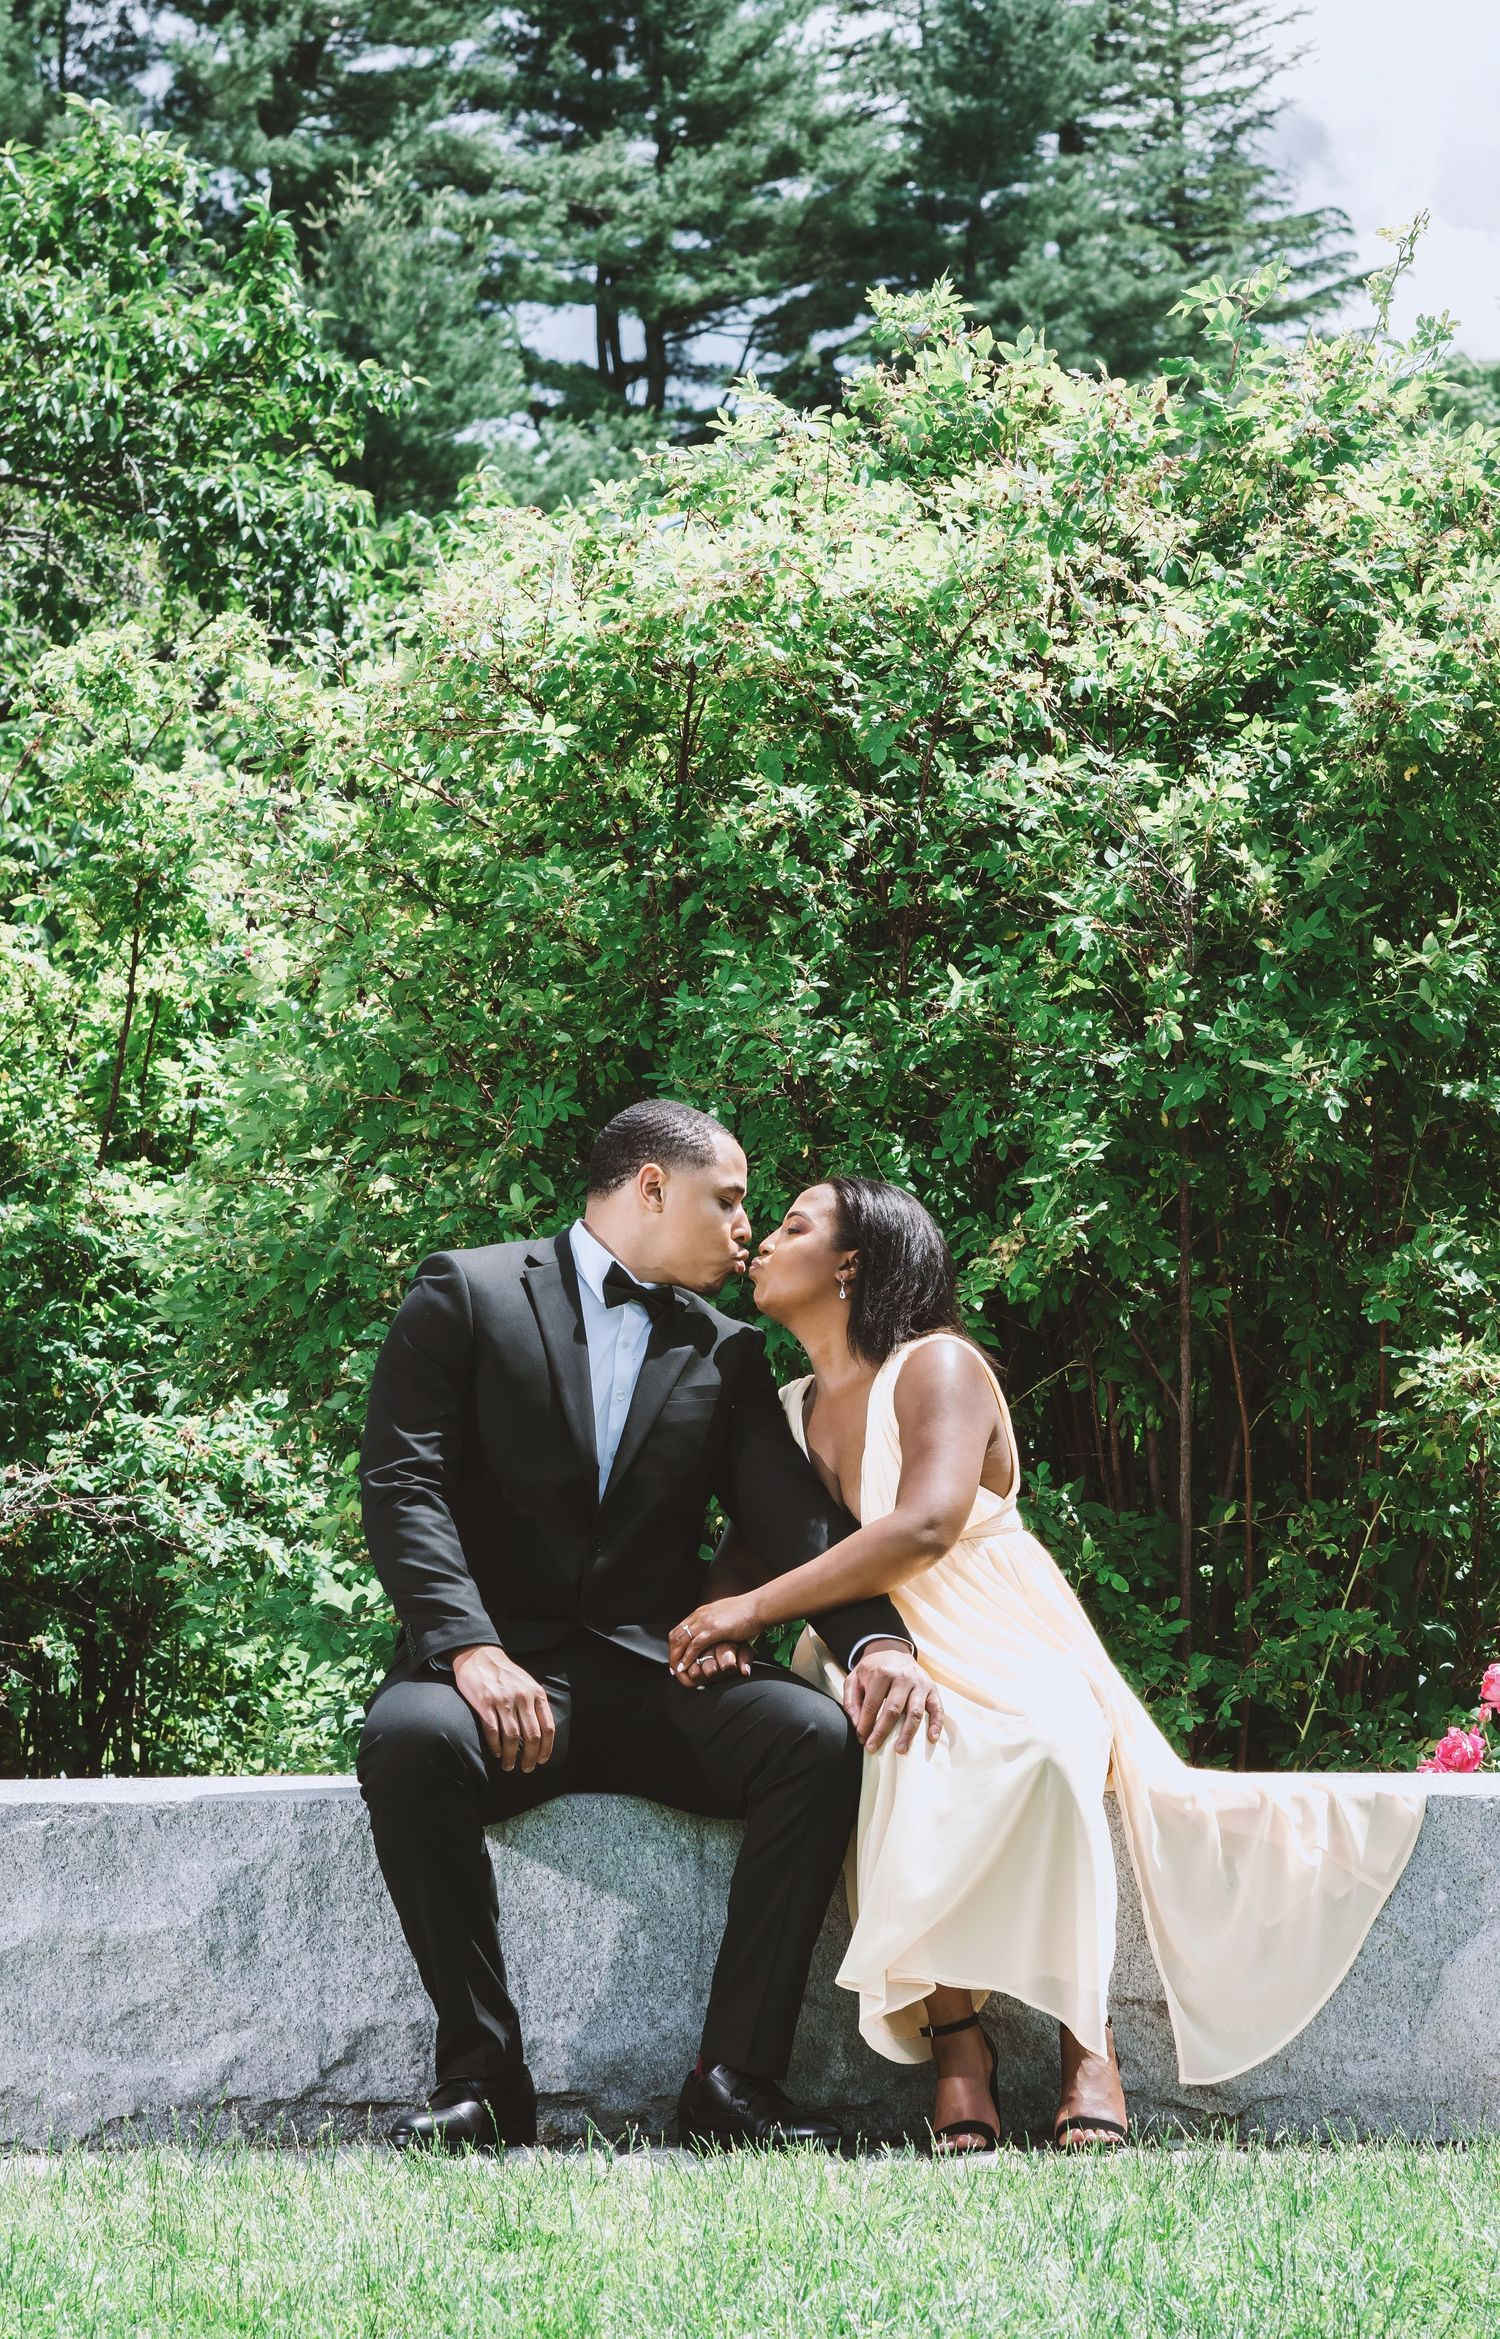 Romantic Engagement Session In Boston Park By Wedding Photographer